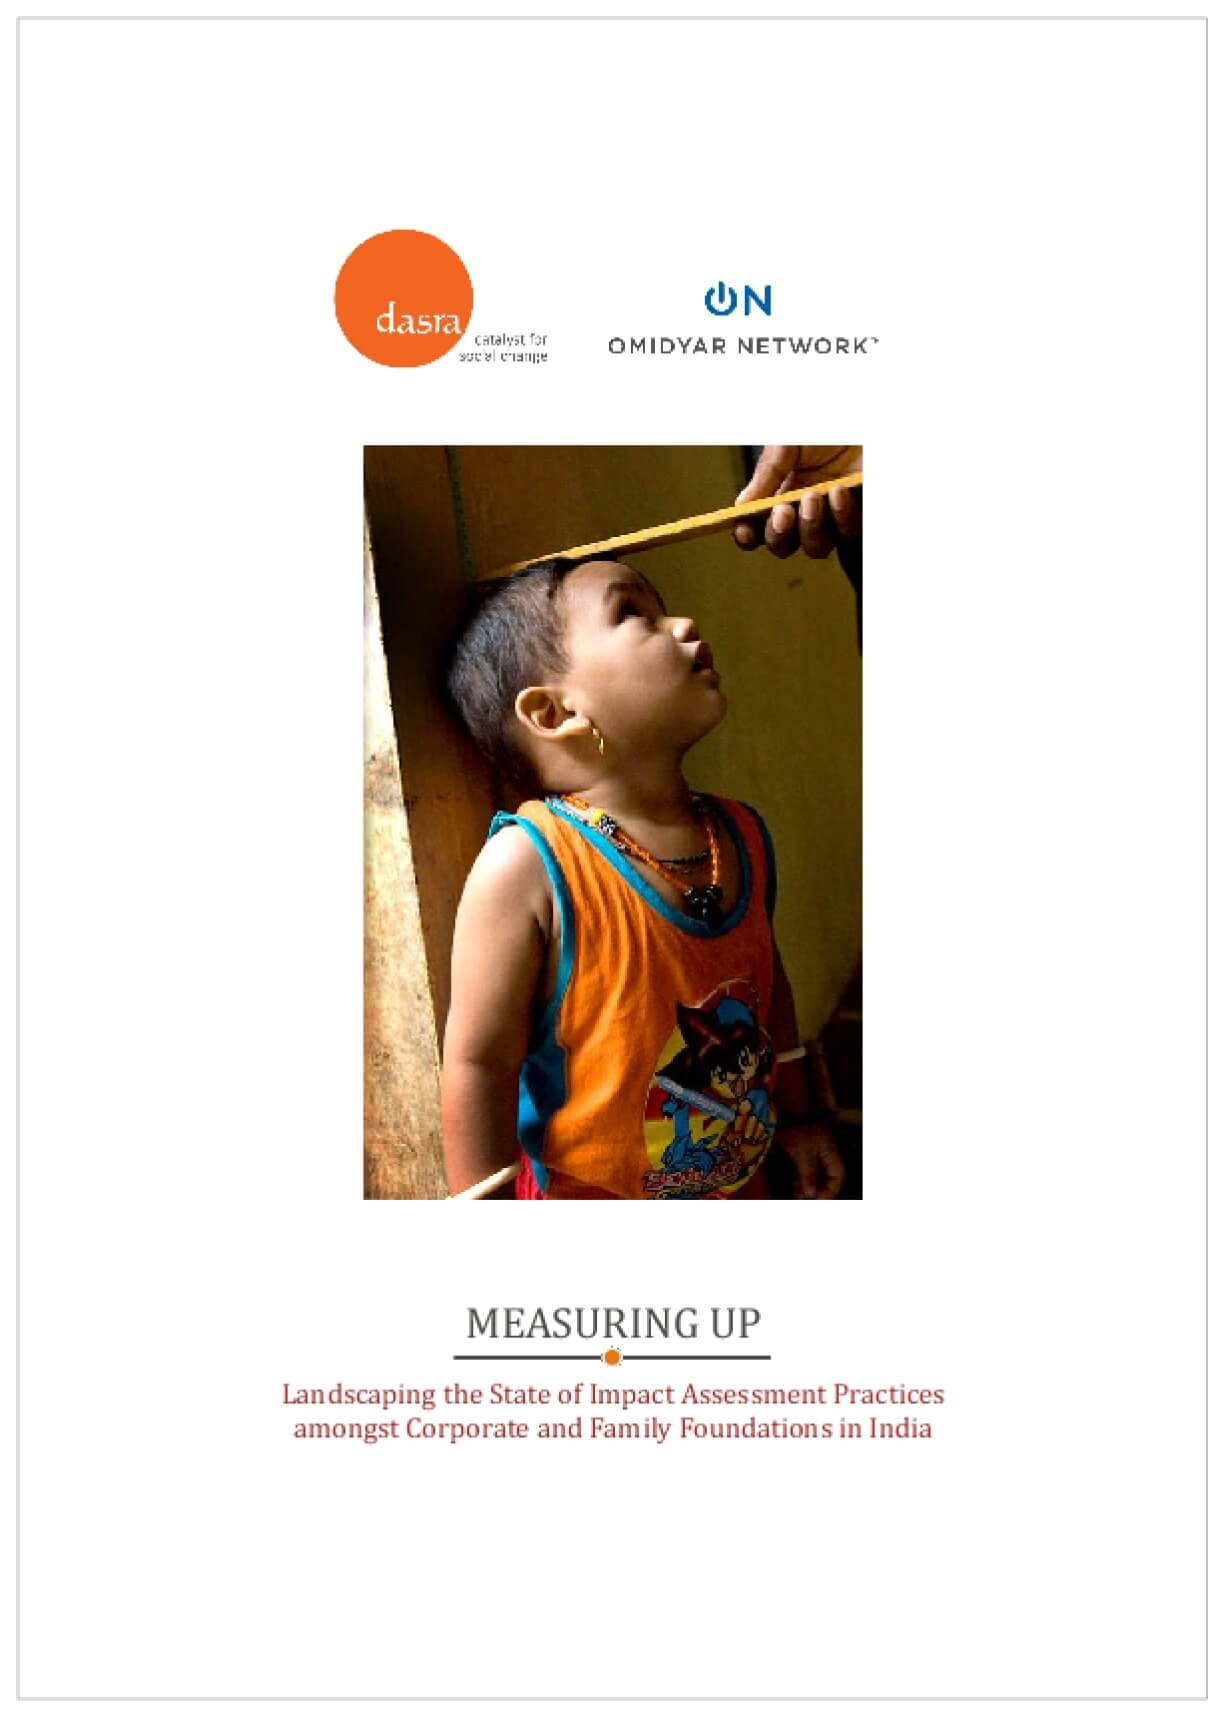 Measuring Up: Landscaping the State of Impact Assessment Practices Amongst Corporate and Family Foundations in India